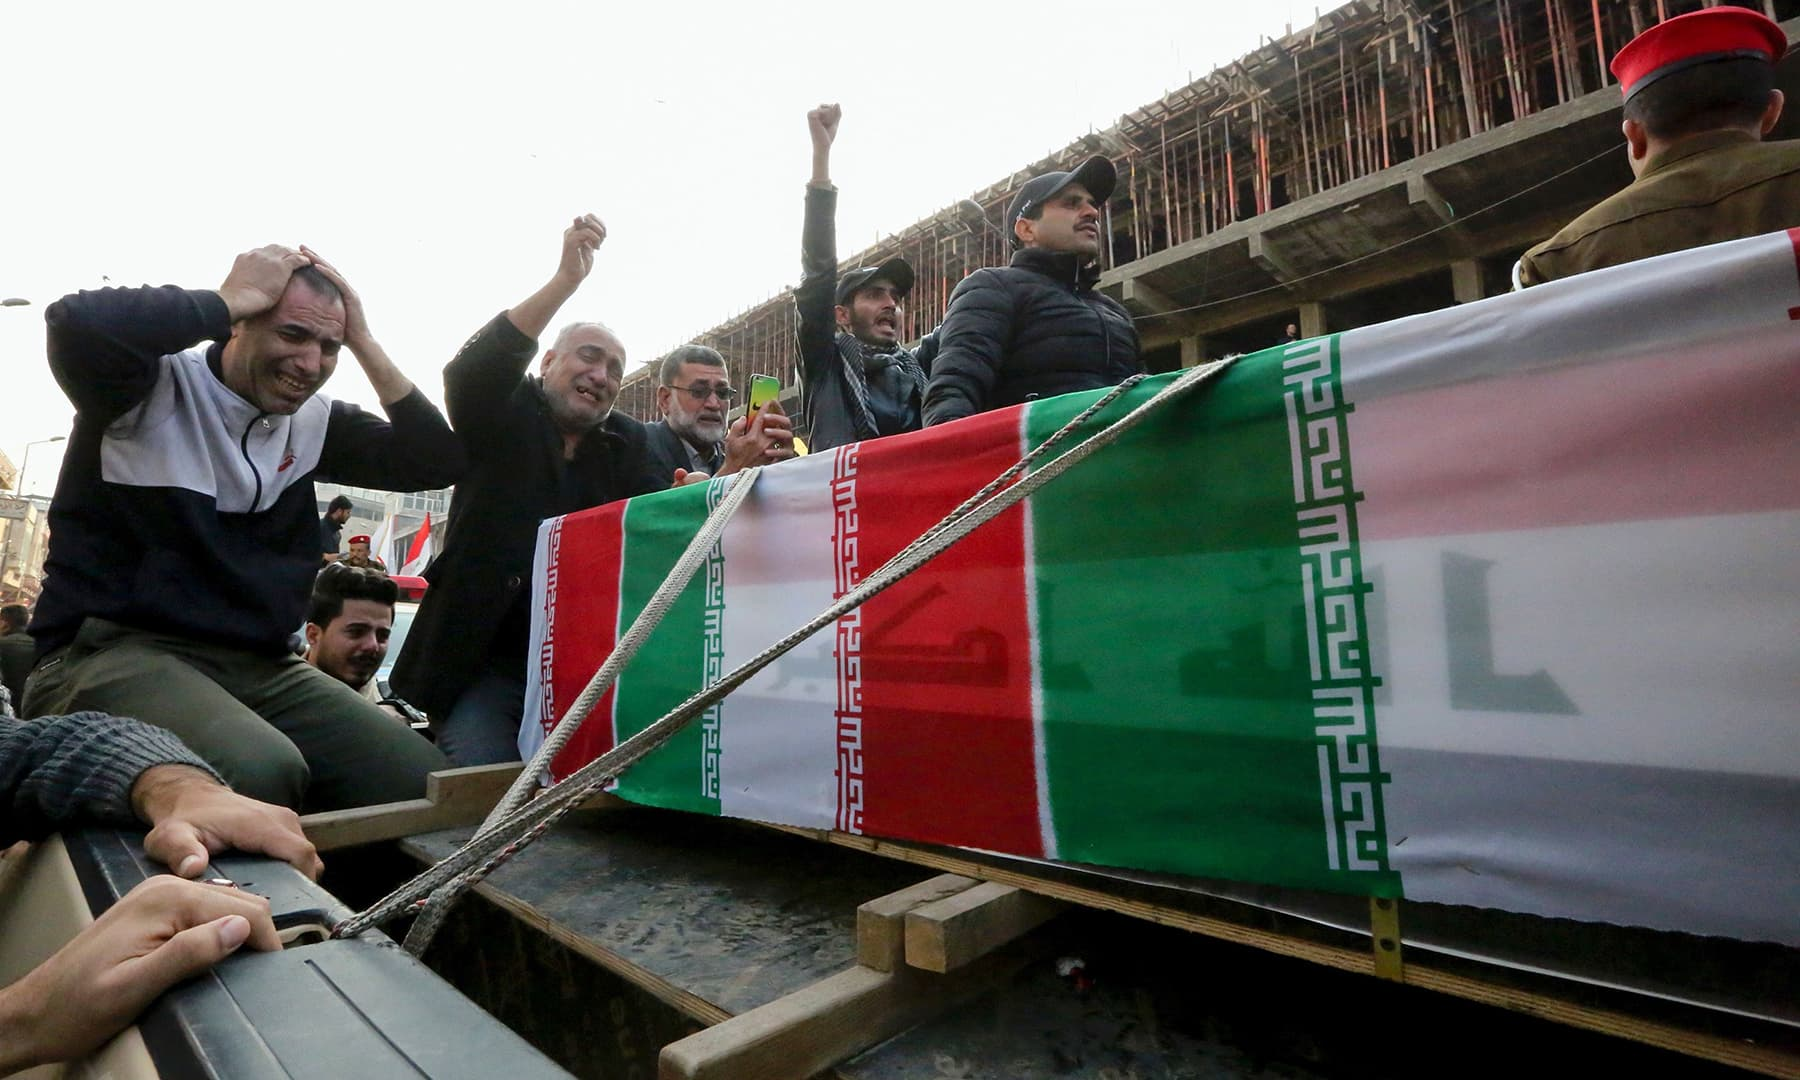 Iraqis mourn over a coffin during the funeral procession of Iraqi paramilitary chief Abu Mahdi al-Muhandis and Iranian military commander Qasem Soleimani, and eight others, in Kadhimiya, on January 4. — AFP